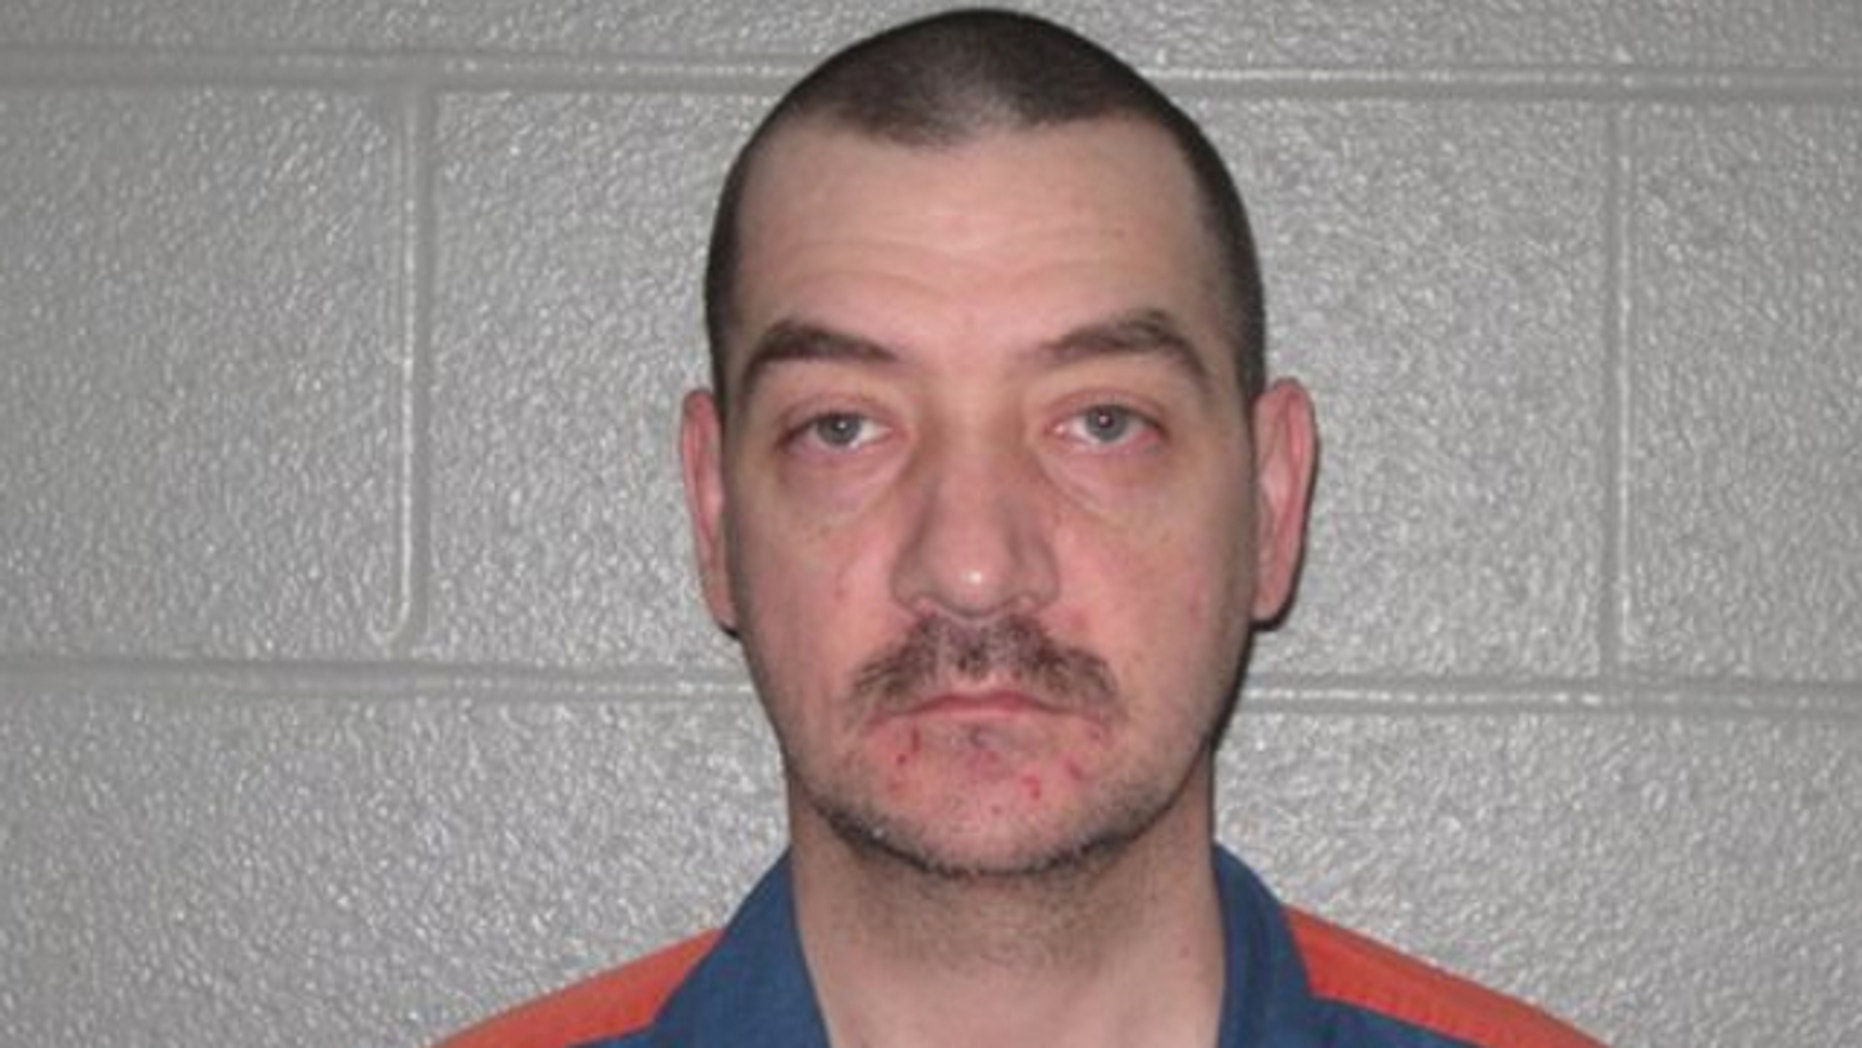 Michigan man's freedom sought after DNA IDs new suspect in 1996